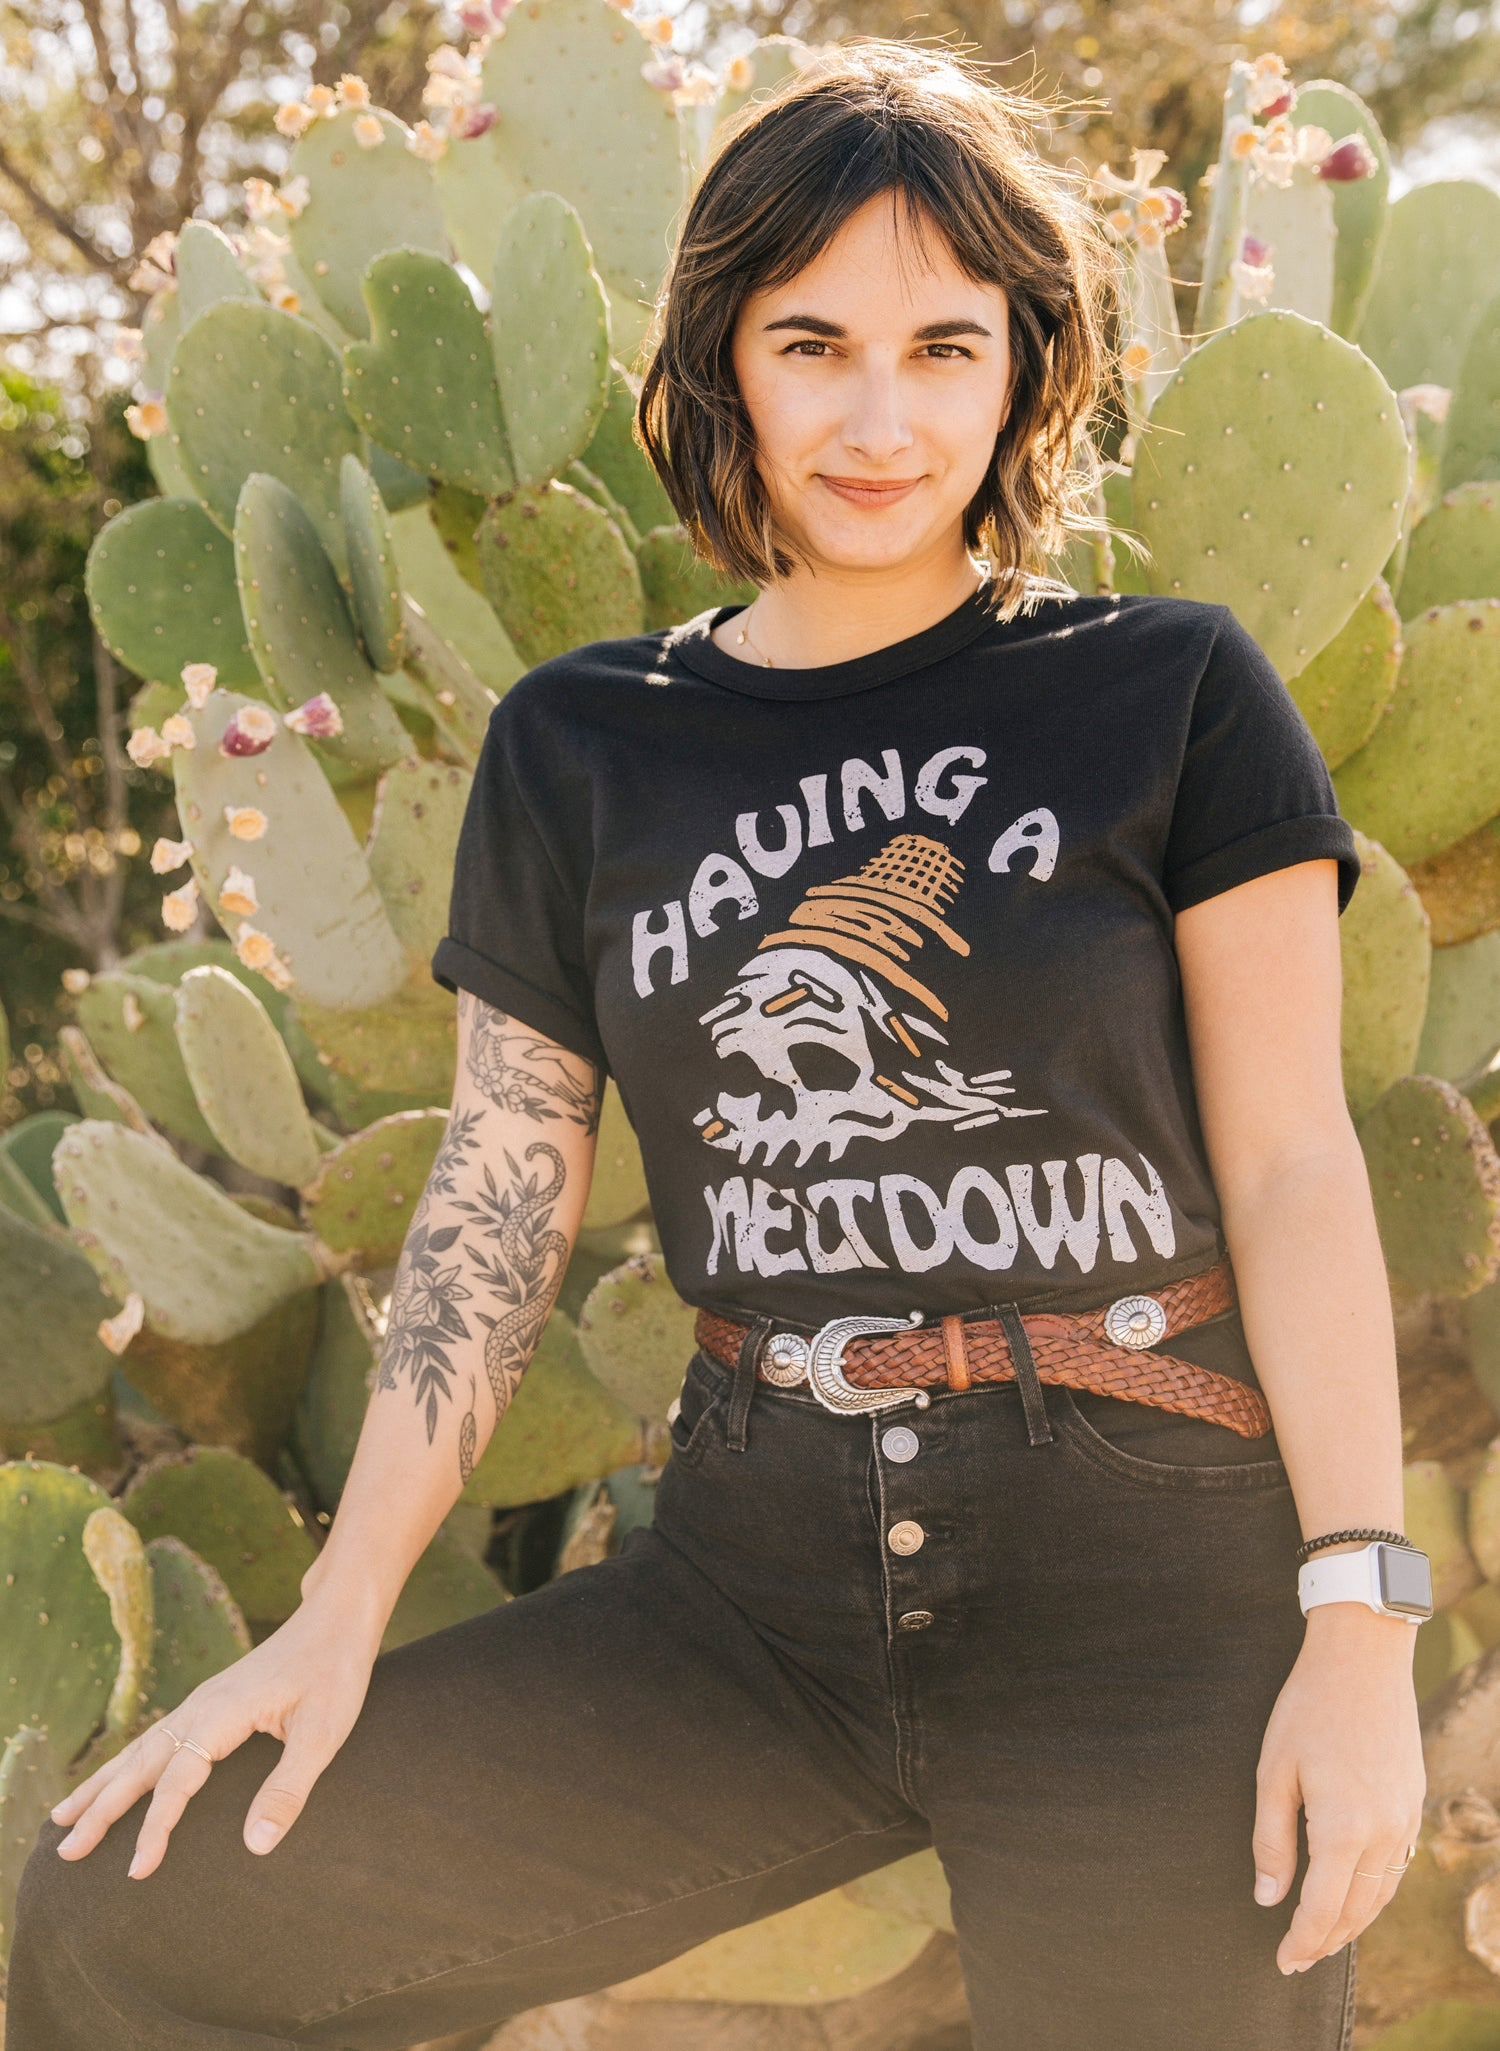 Having a Meltdown Skull Ice Cream Cone Mental Health Therapy Tshirt